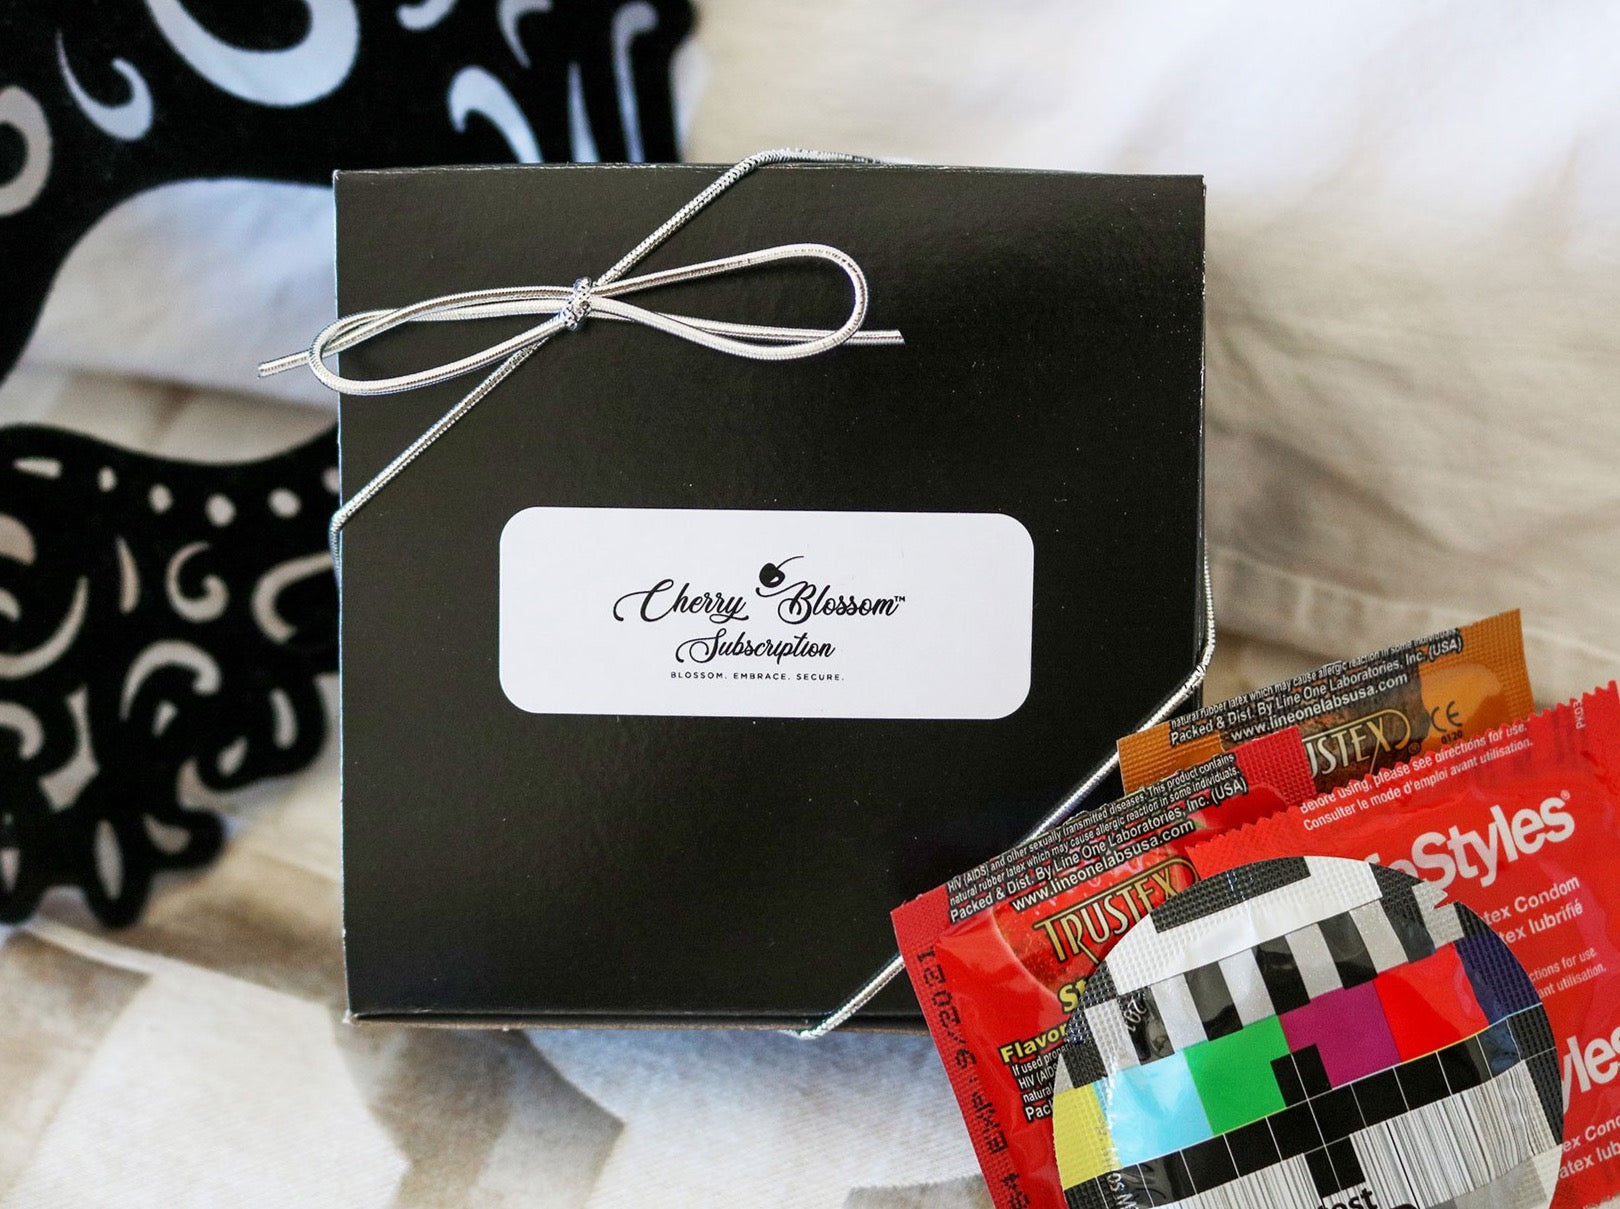 15 CONDOM PLAYTIME MINI BOX (Customize your own) - Cherry Blossom Subscription